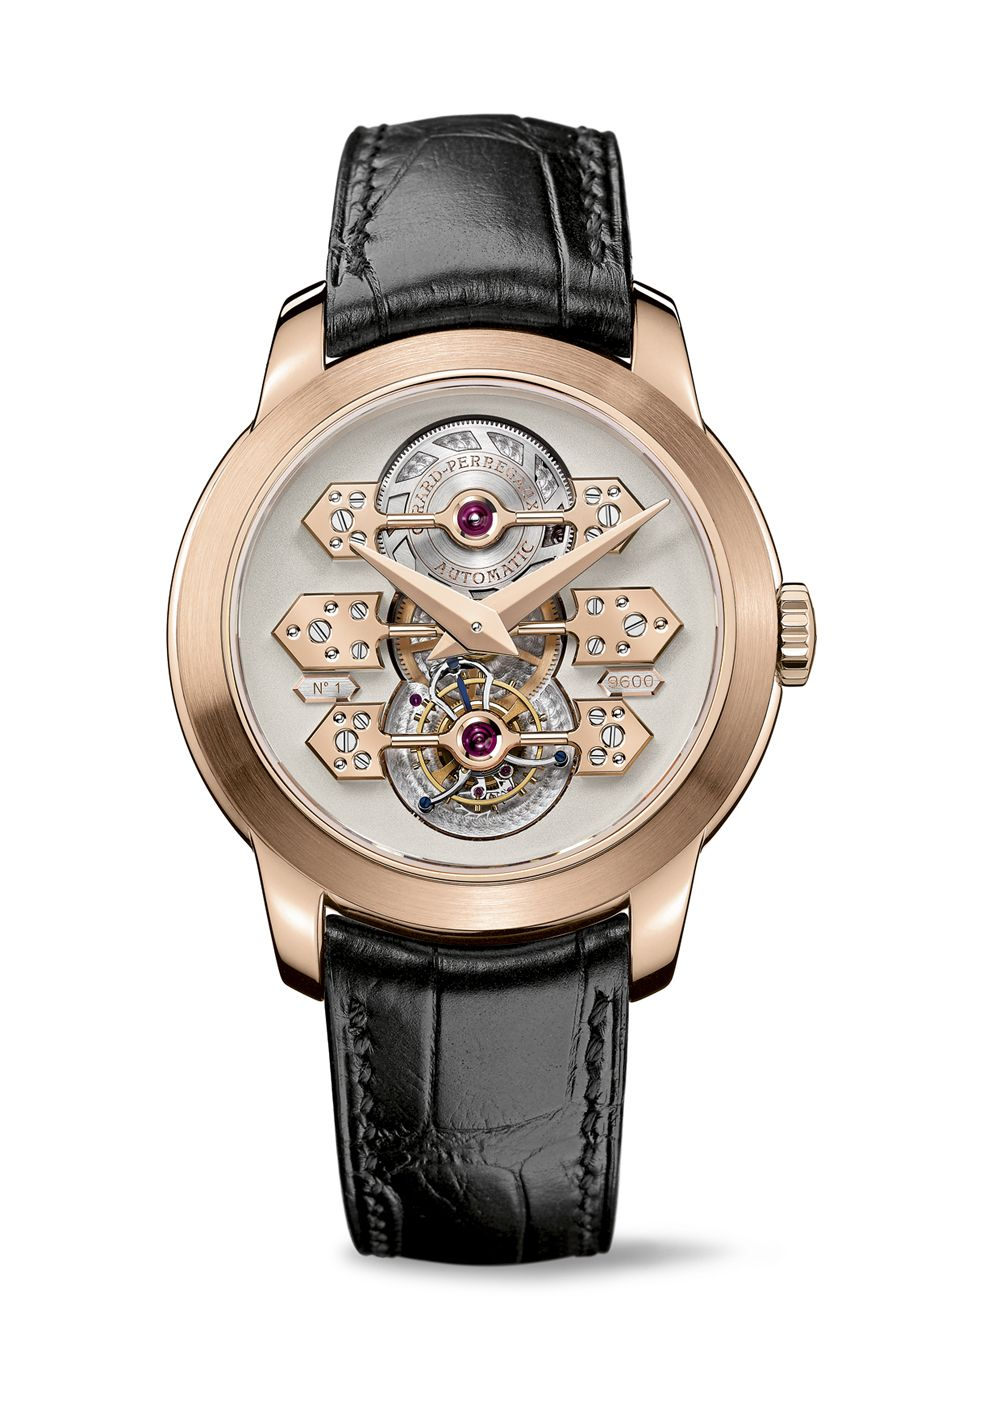 1458c90071c Girard-Perregaux Tourbillon with Three Gold Bridges - Hautetime Brincos